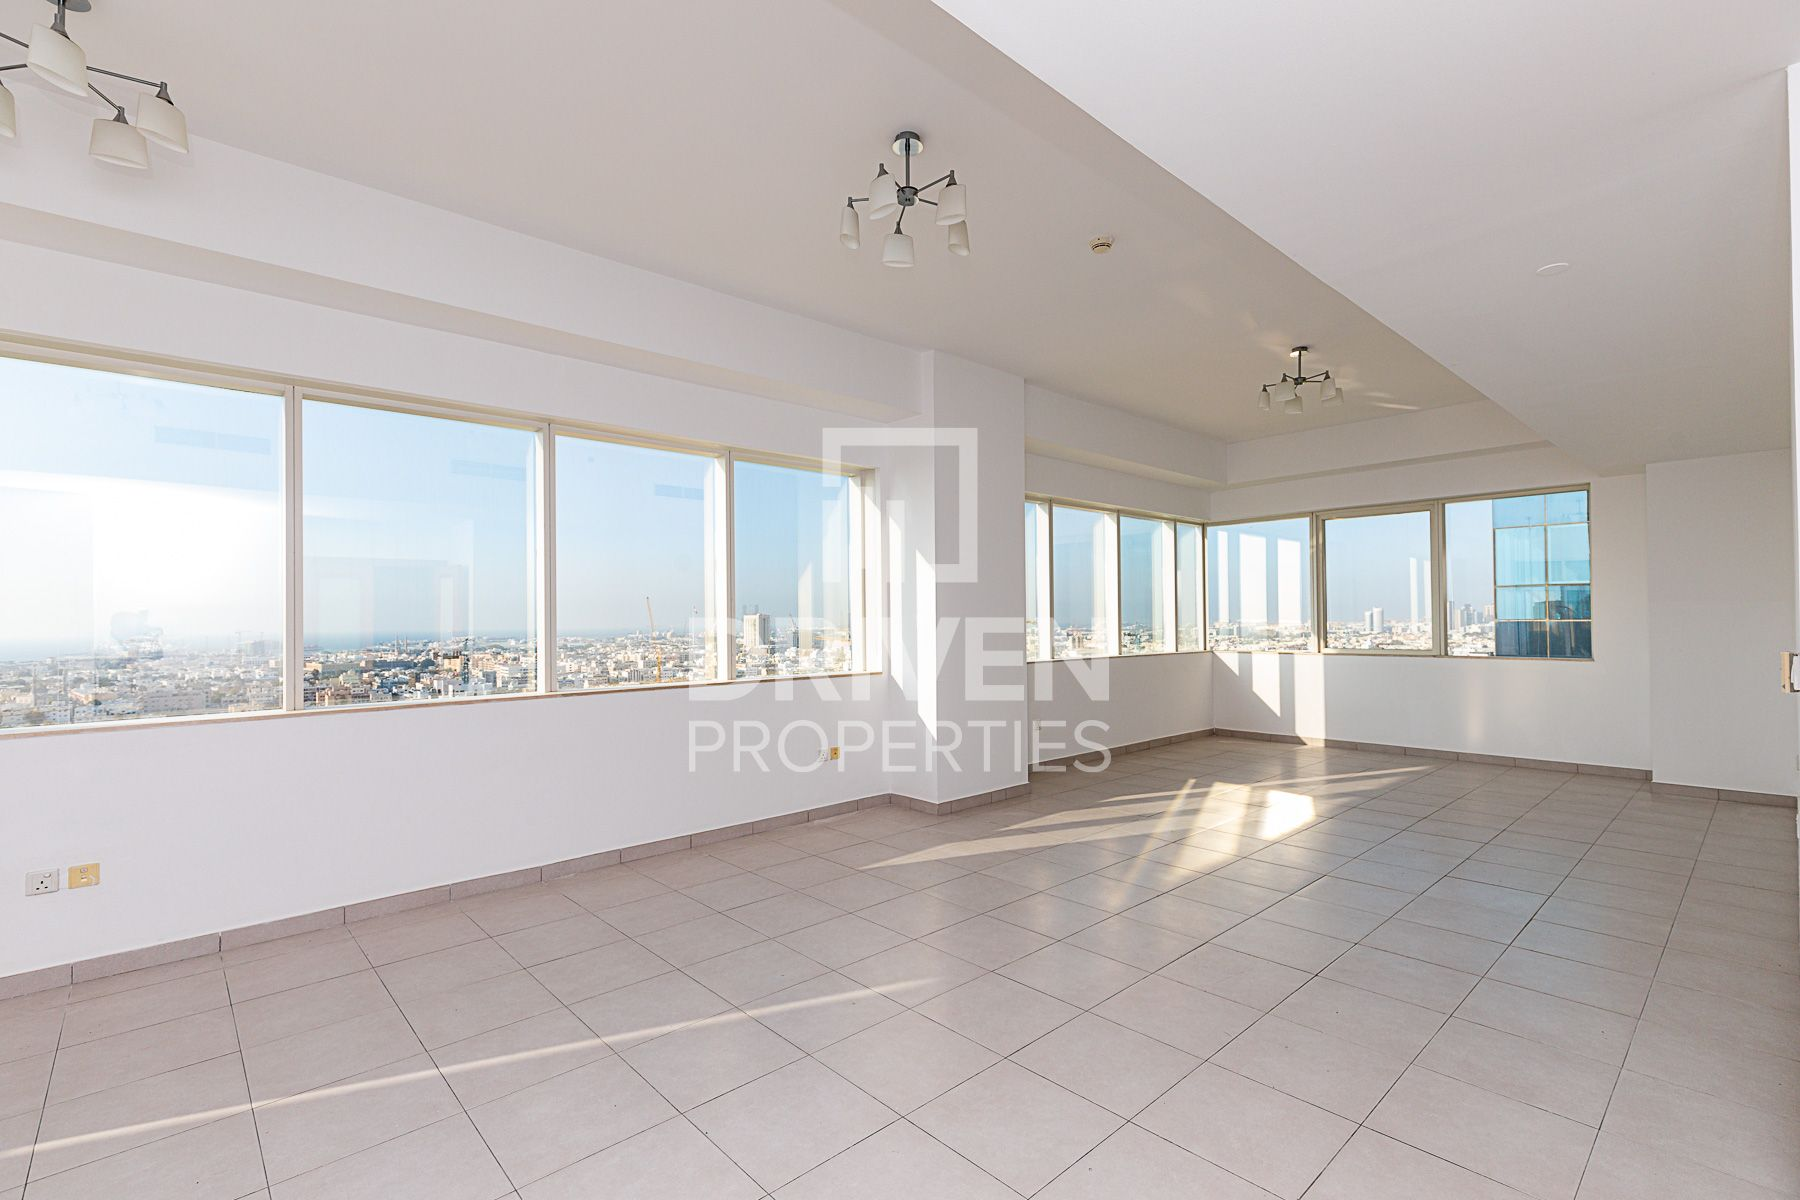 Chiller Free | Sea View | on High Floor